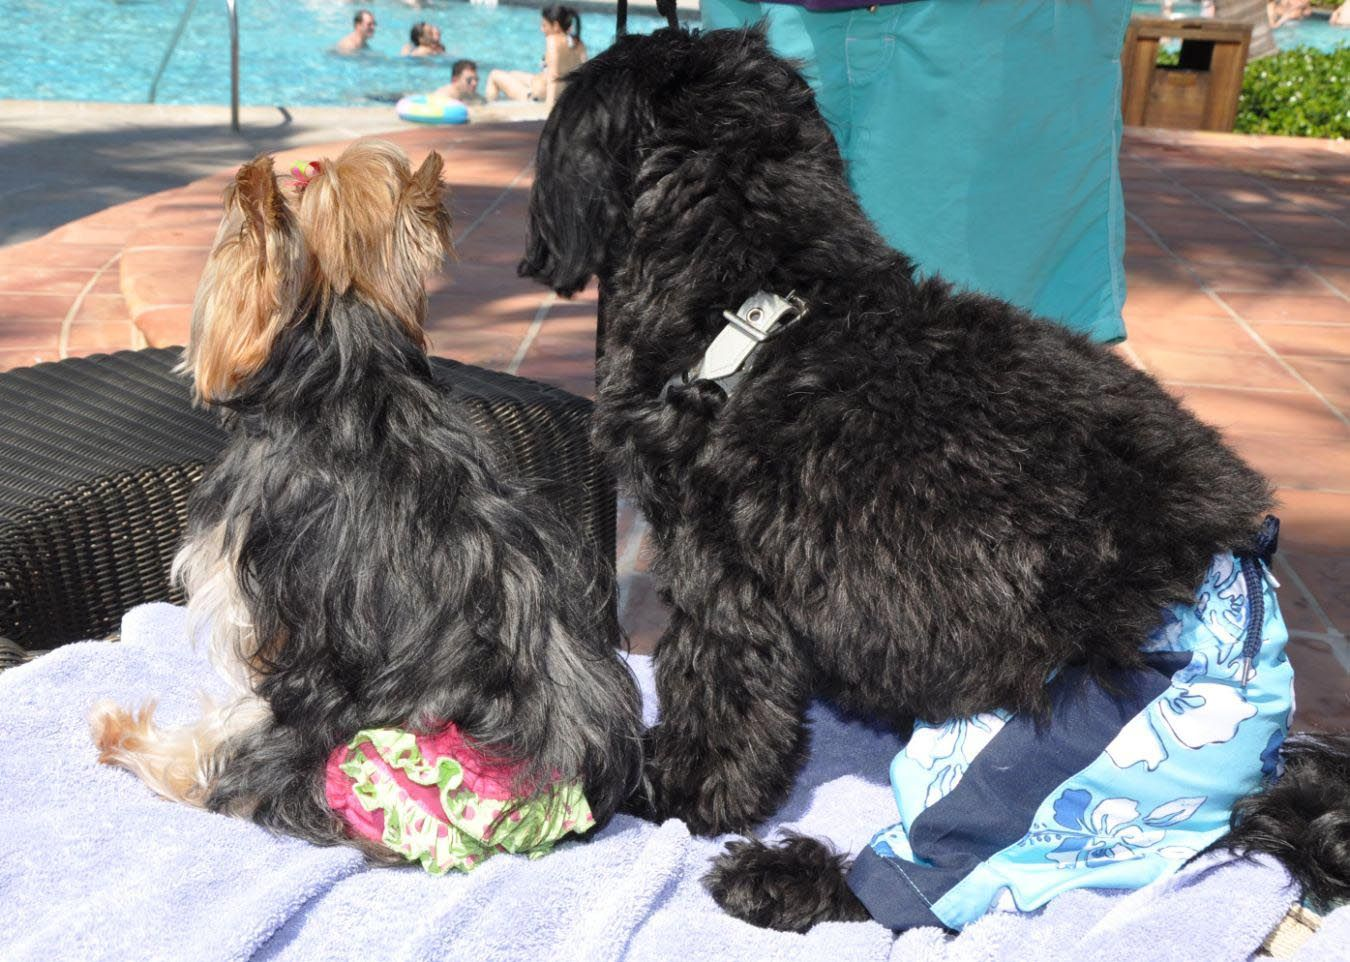 Millie and I were in San Juan at the pool and were allowed